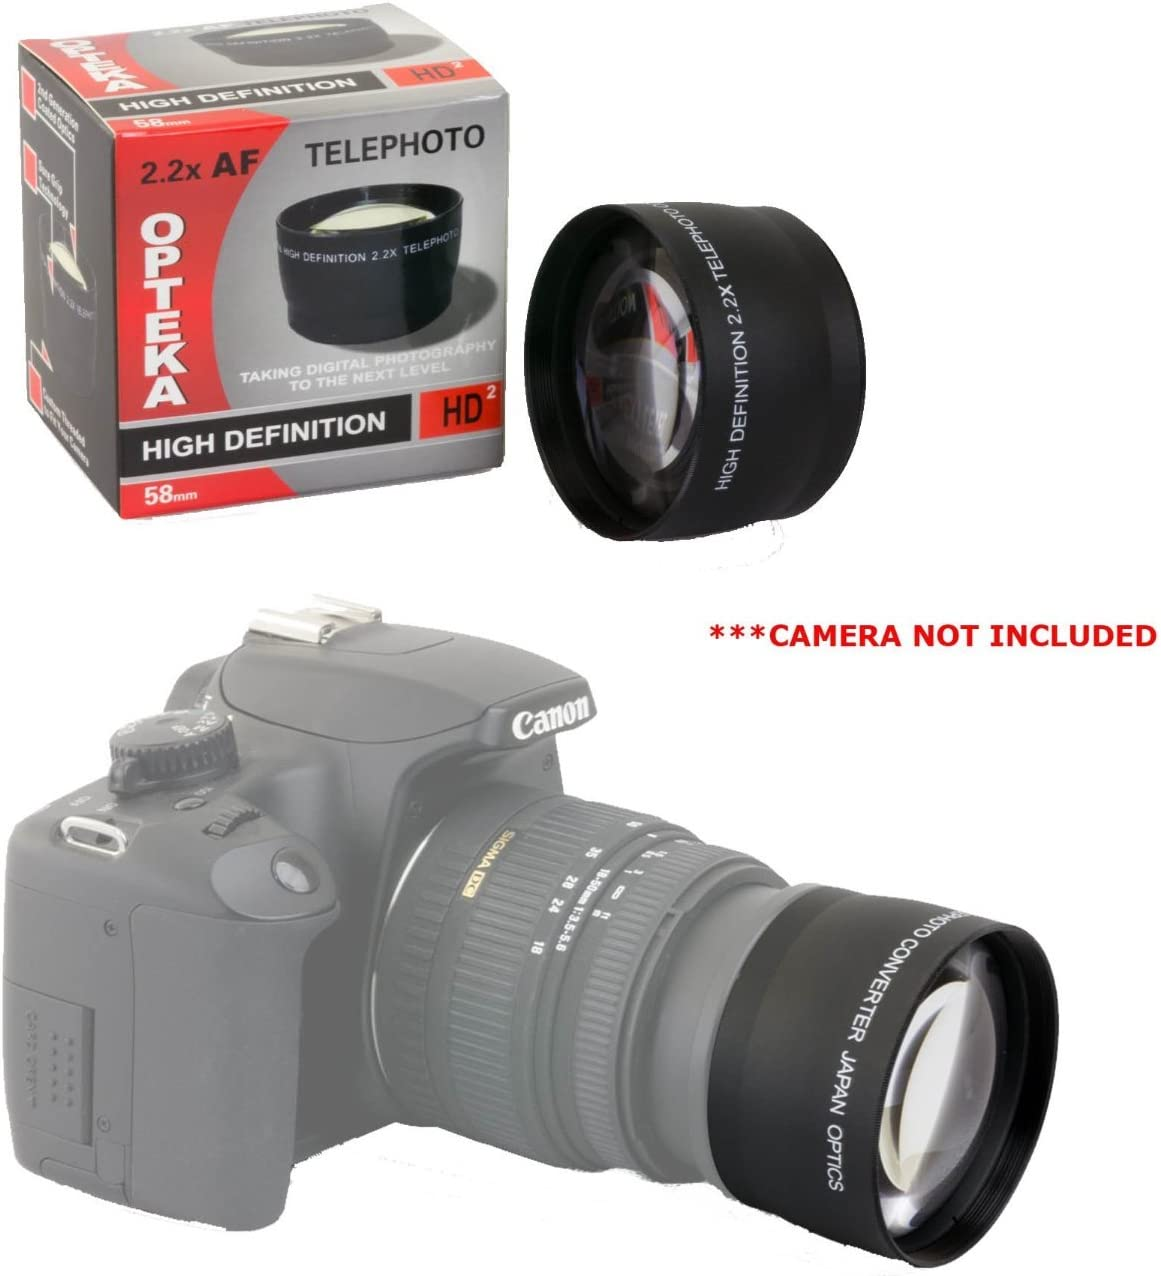 10 Piece Ultimate Lens Package For the Sony Alpha A33 A35 A55 A65 A580 A99 A37 A77 A37 A5000 NEX-7 NEX-3N Includes .43x High Definition II Wide Angle Panoramic Macro Fisheye Lens 2.2x Extreme High Definition AF Telephoto Lens Professional 5 Piece Filte